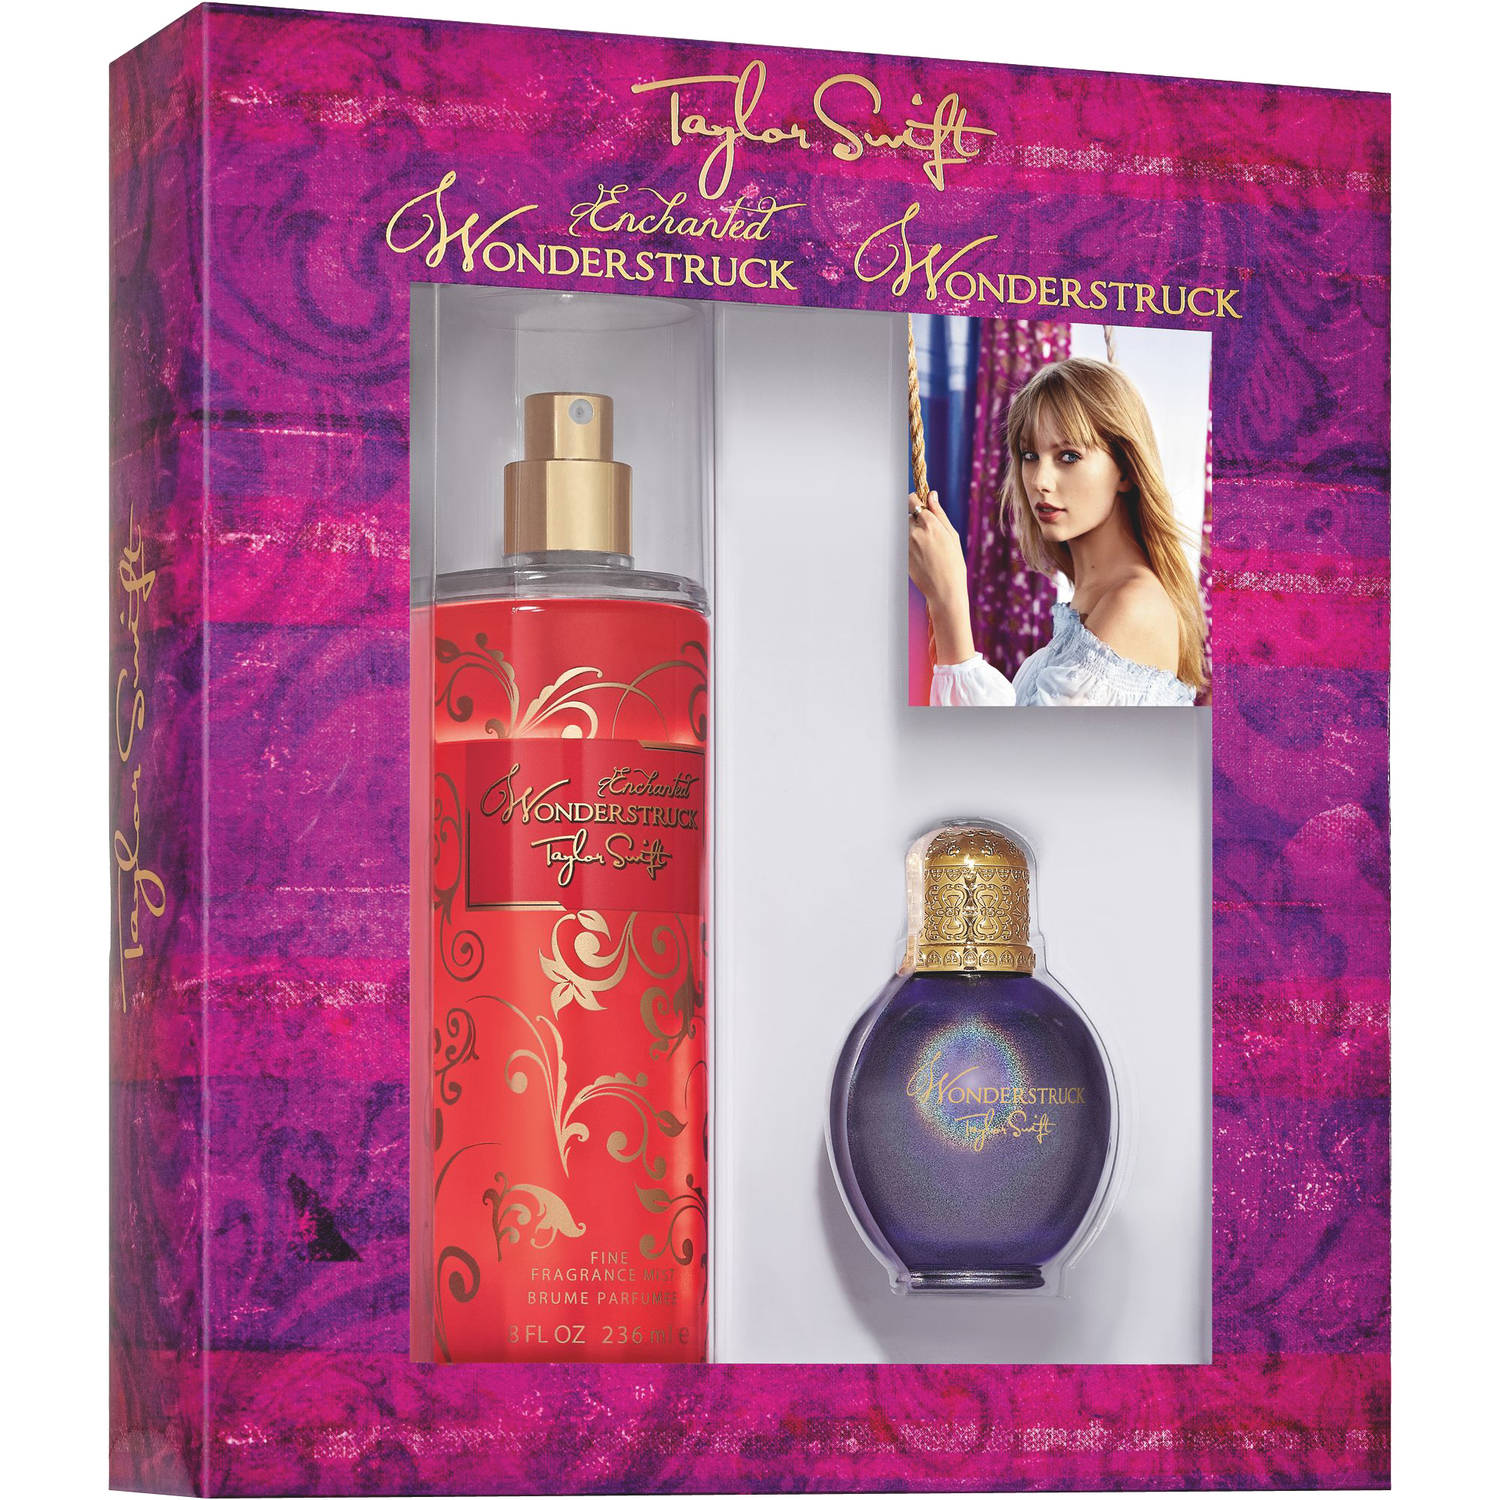 Taylor Swift Wonderstruck Fragrance Gift Set, 2 pc